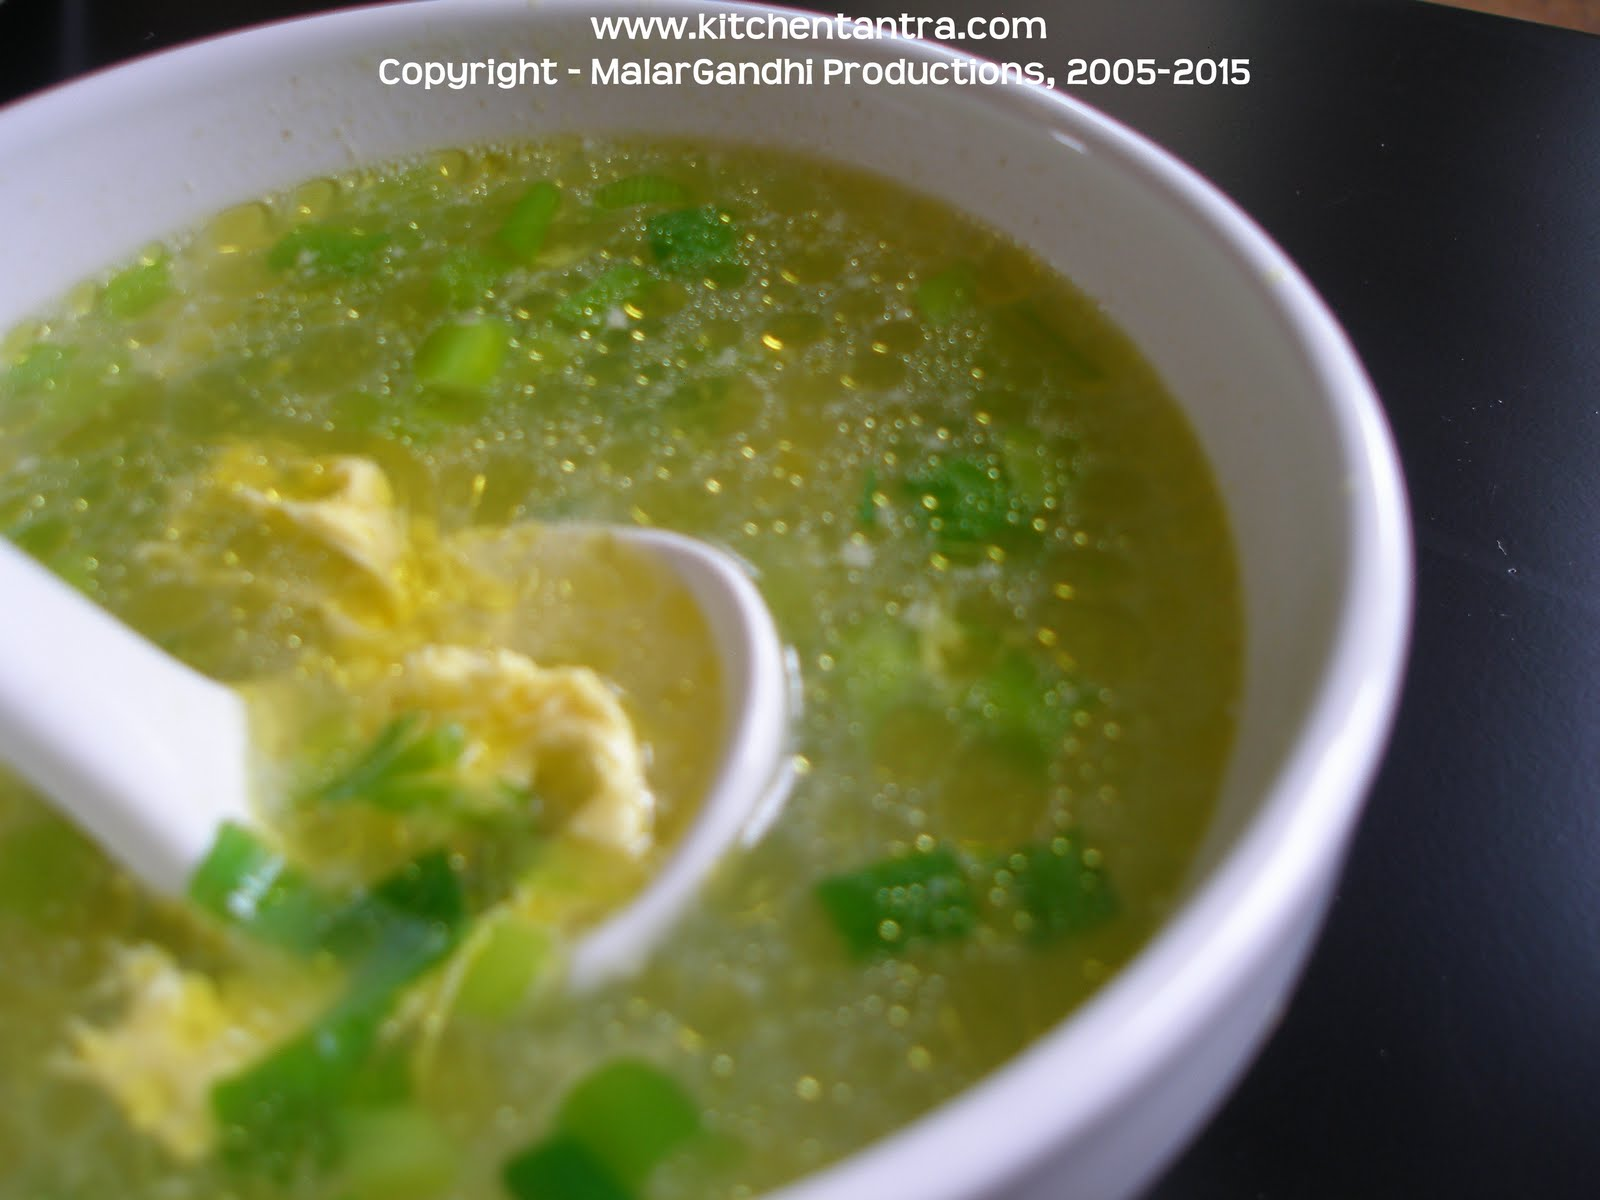 Tantra - tease your palate: Egg Drop Soup / Indo-Chinese Egg Soup